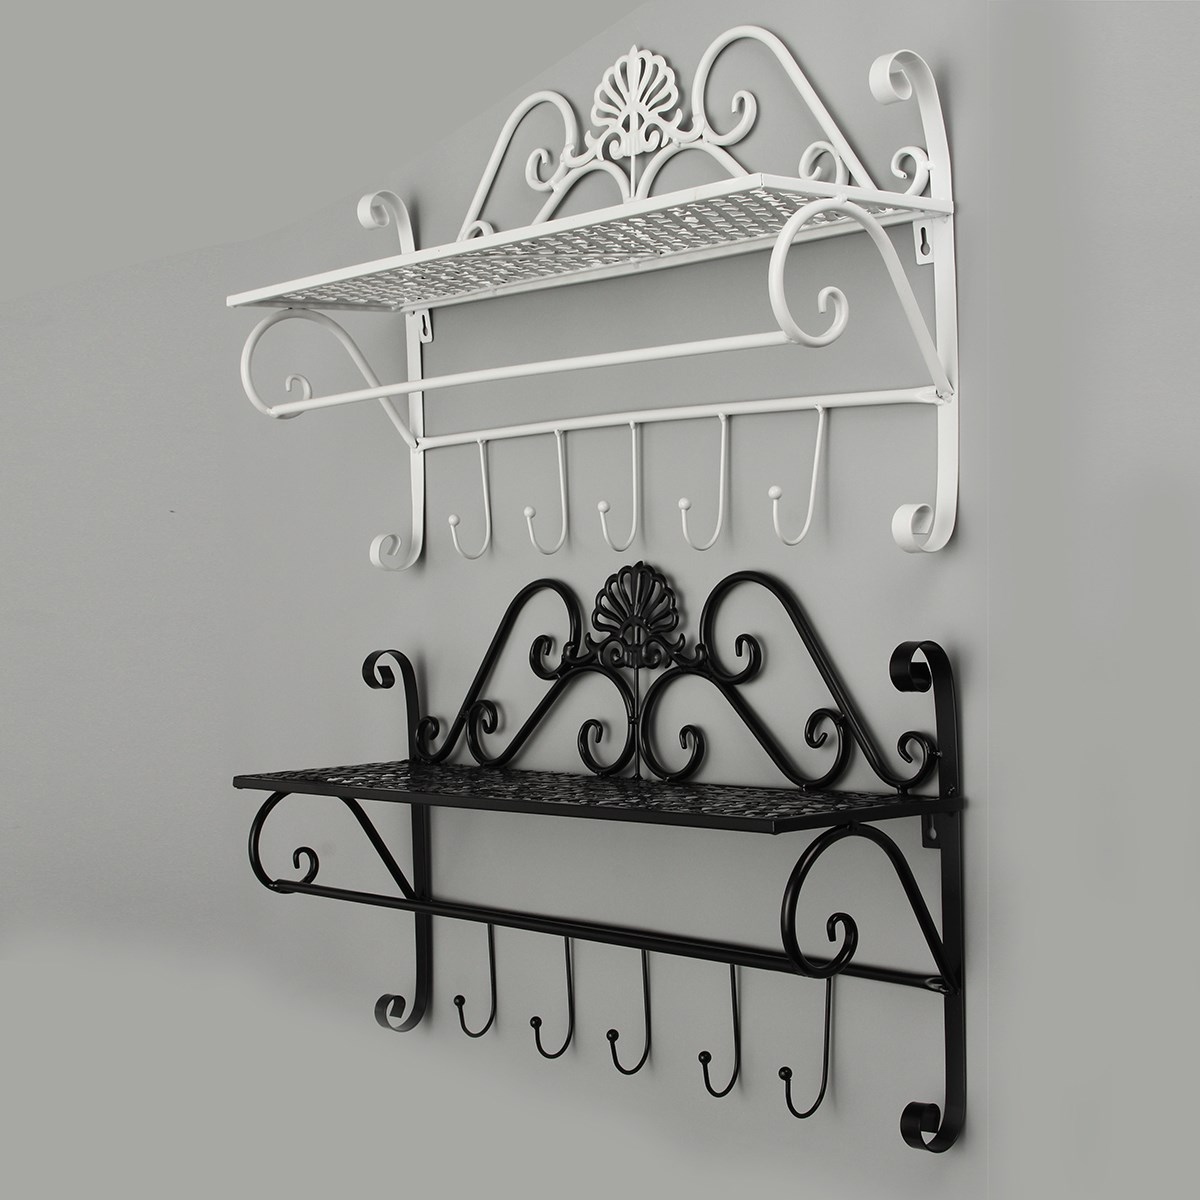 Bathroom Storage Rack Wrought Iron Wall Towel Rack Shelf Single Prateleira  Wall Shelf Toilet Shelving Storage. Popular Storage Racks Shelves Buy Cheap Storage Racks Shelves lots